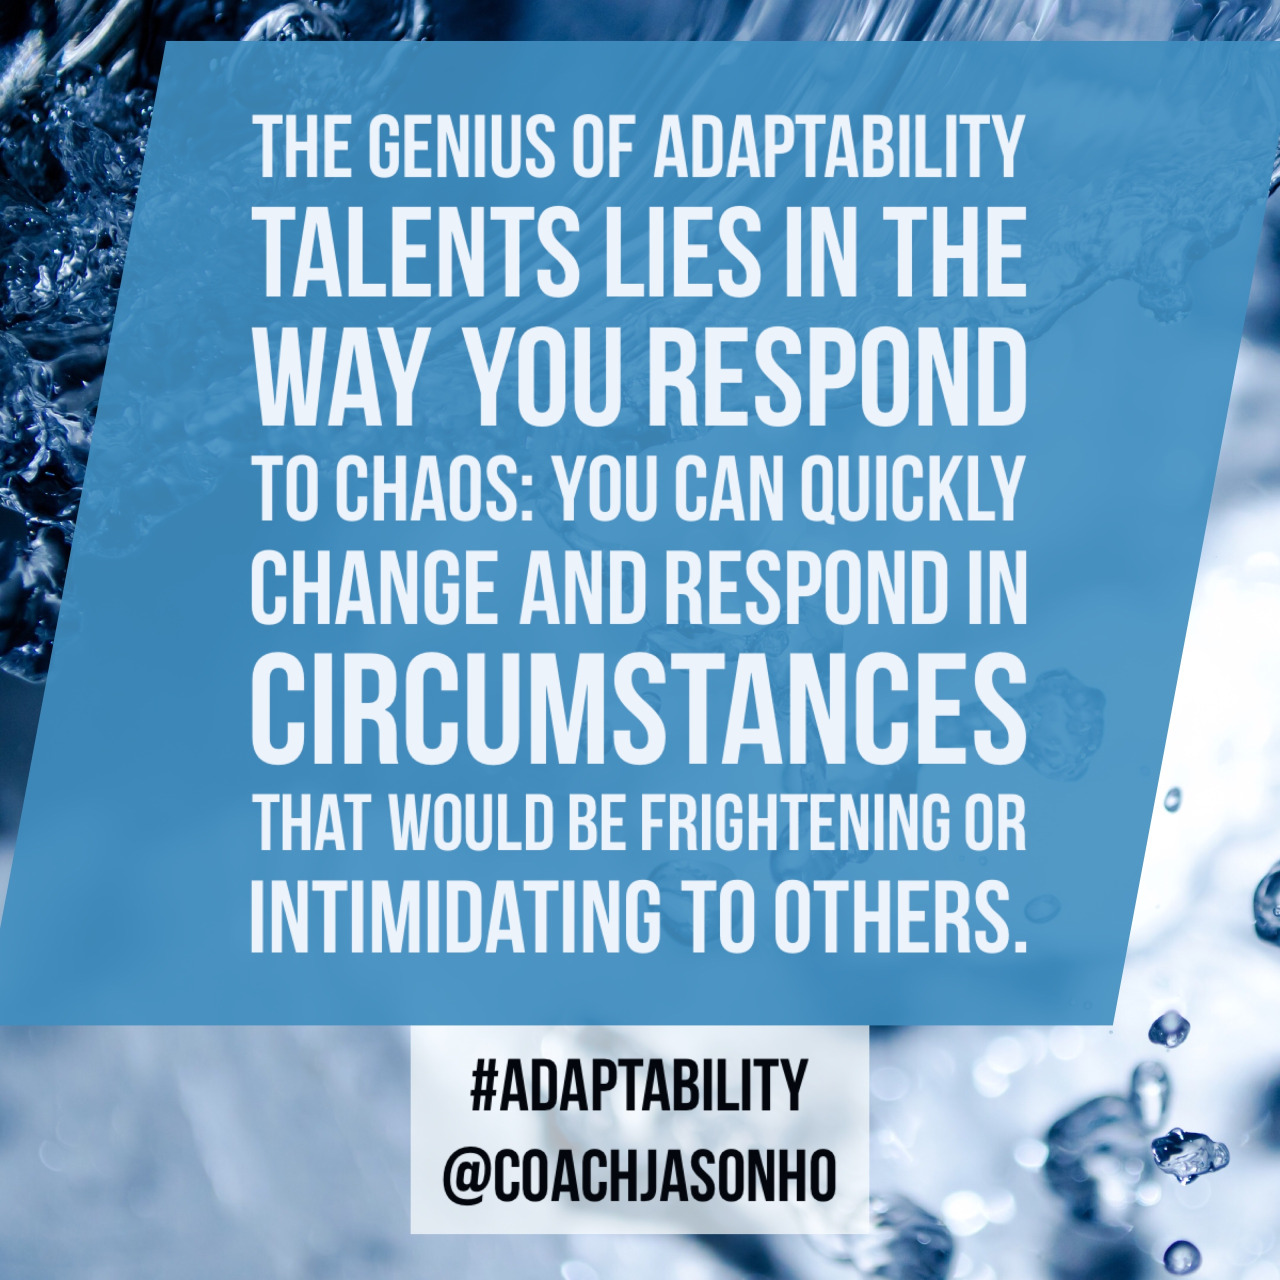 #Singapore - #StrengthsFinder #Adaptability genius is like water. Adaptability goes around chaos like a river around rock   The definition of StrengthsFinder Adaptability's GENIUS  The genius of Adaptability talents lies in the way you respond to chaos: You can quickly change and respond in circumstances that would be frightening or intimidating to others   #StrengthsFinderAdaptability #StrengthsFinderGenius  #StrengthsQuest #StrengthsSchool #Gallup #StrengthsFinderSG #Asia #HumanResource #SelfImprovement #SelfDevelopment #StrengthsCoach #ProfessionalDevelopment #StrengthsFinderCoach #CoachJasonHo   Jason Ho • SouthEast Asia & Singapore's 1st StrengthsFinder Certified Coach • Strengths School™ Singapore